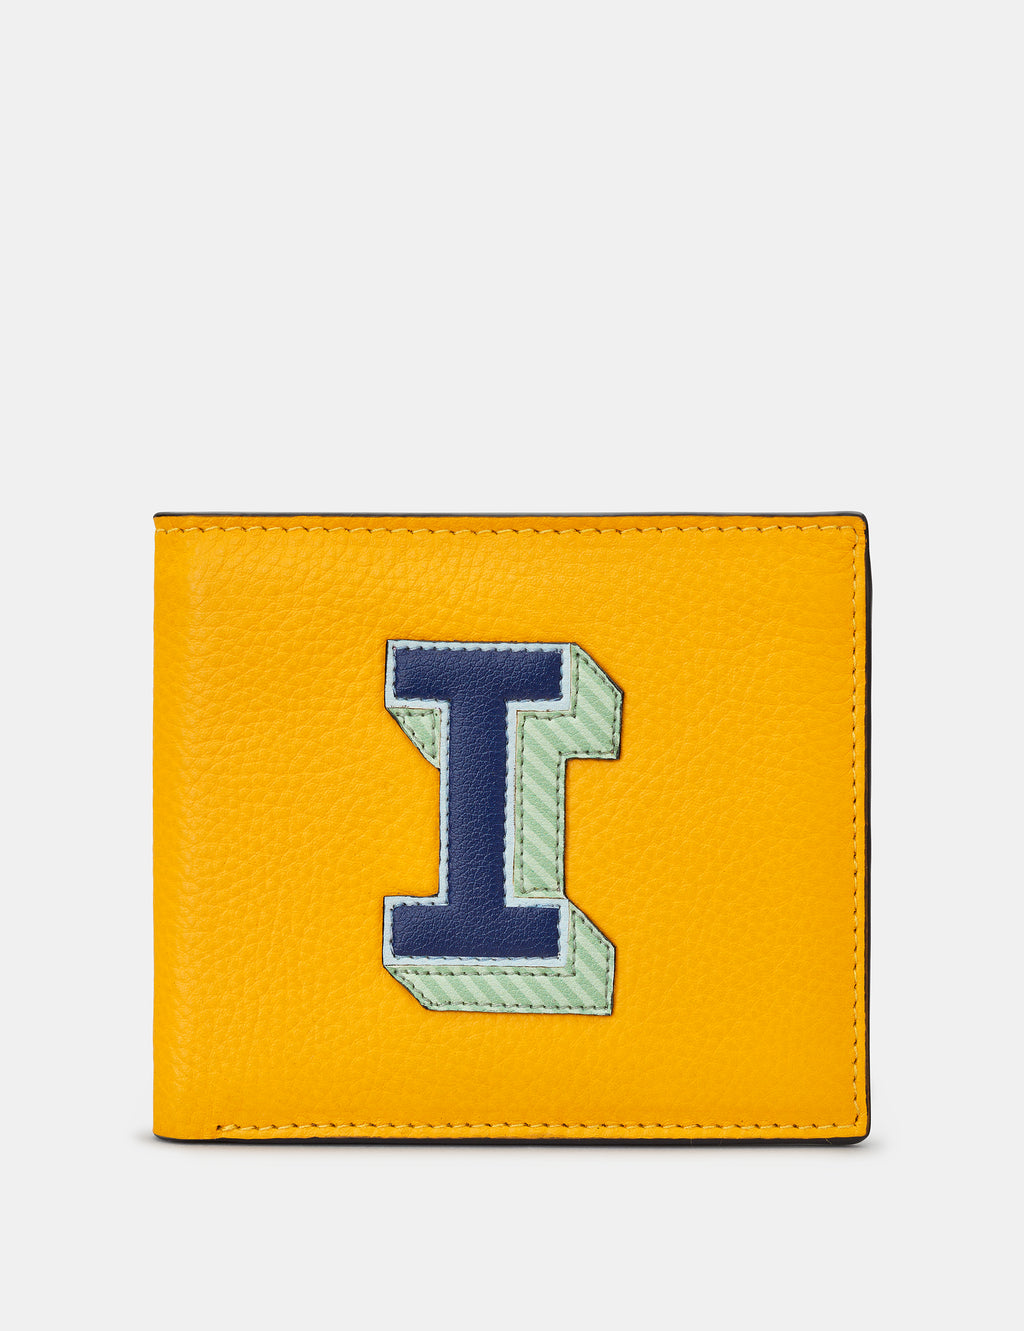 I Initial Mustard Yellow Leather Wallet